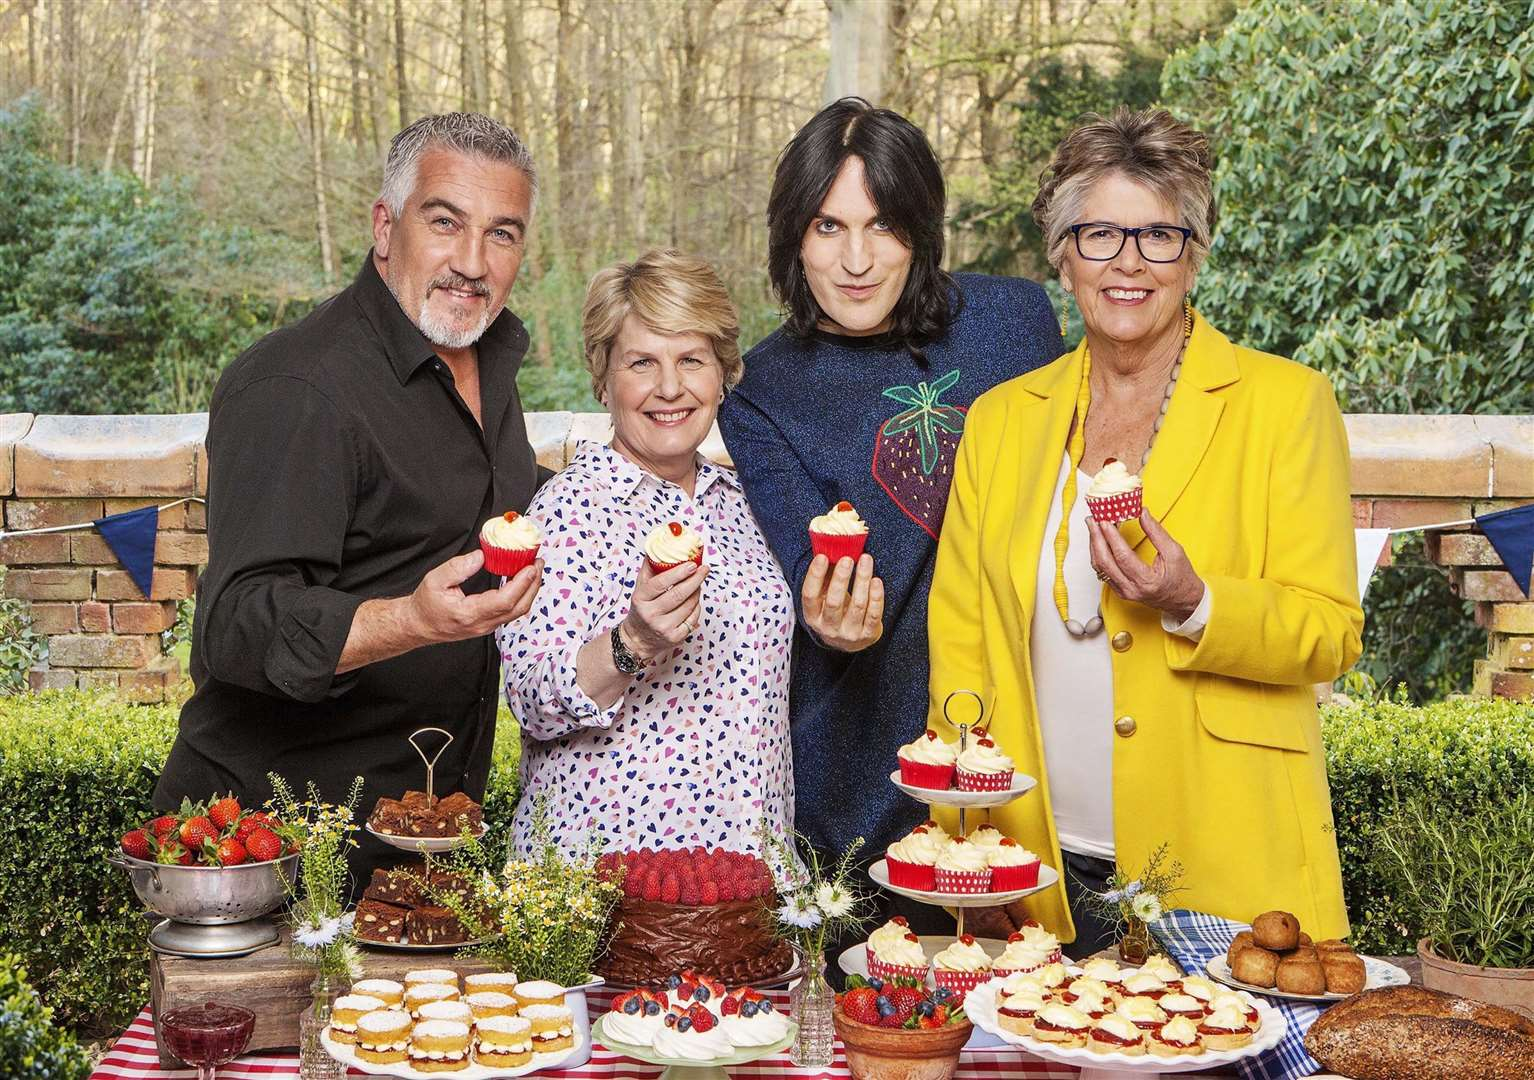 Prue Leith on the set of Great British Bake Off with fellow presenters Paul Hollywood, Sandie Toksvig and Noel Fielding